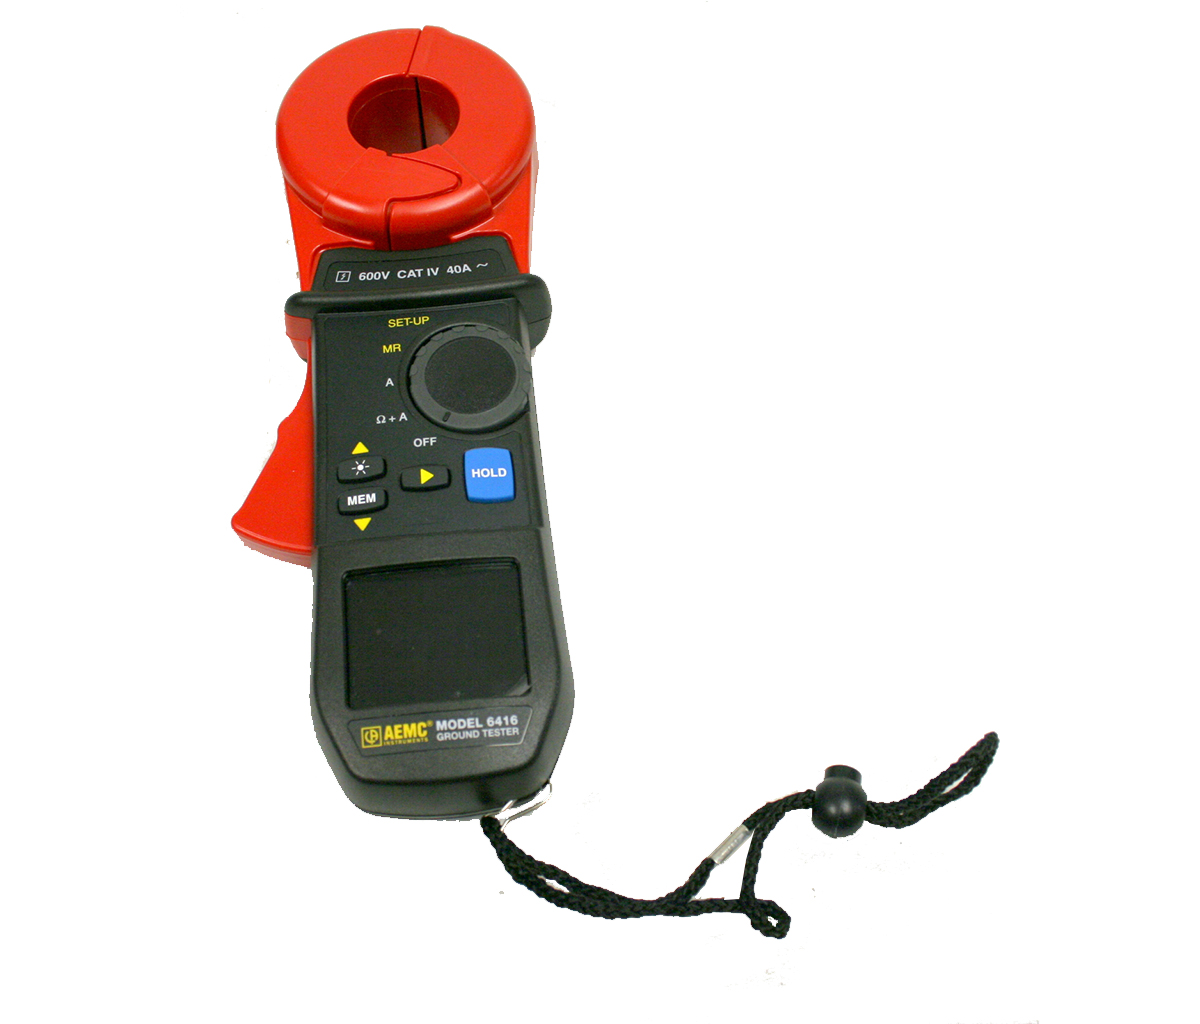 AEMC 6416 Ground Resistance Tester for Rent | TRS-RenTelco